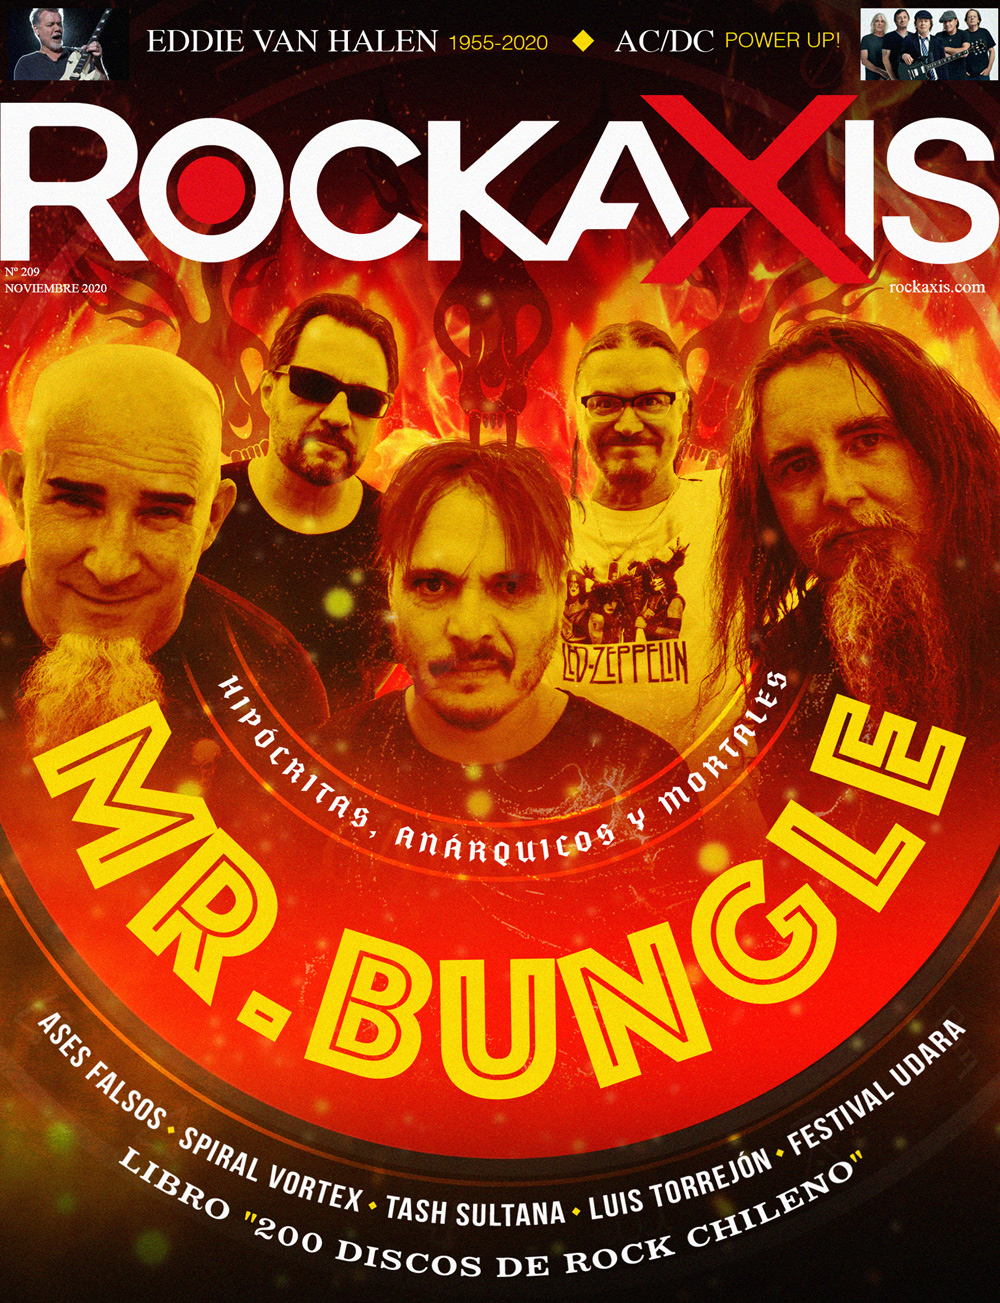 Hipócritas, anárquicos y mortales: Mr. Bungle en revista #Rockaxis209